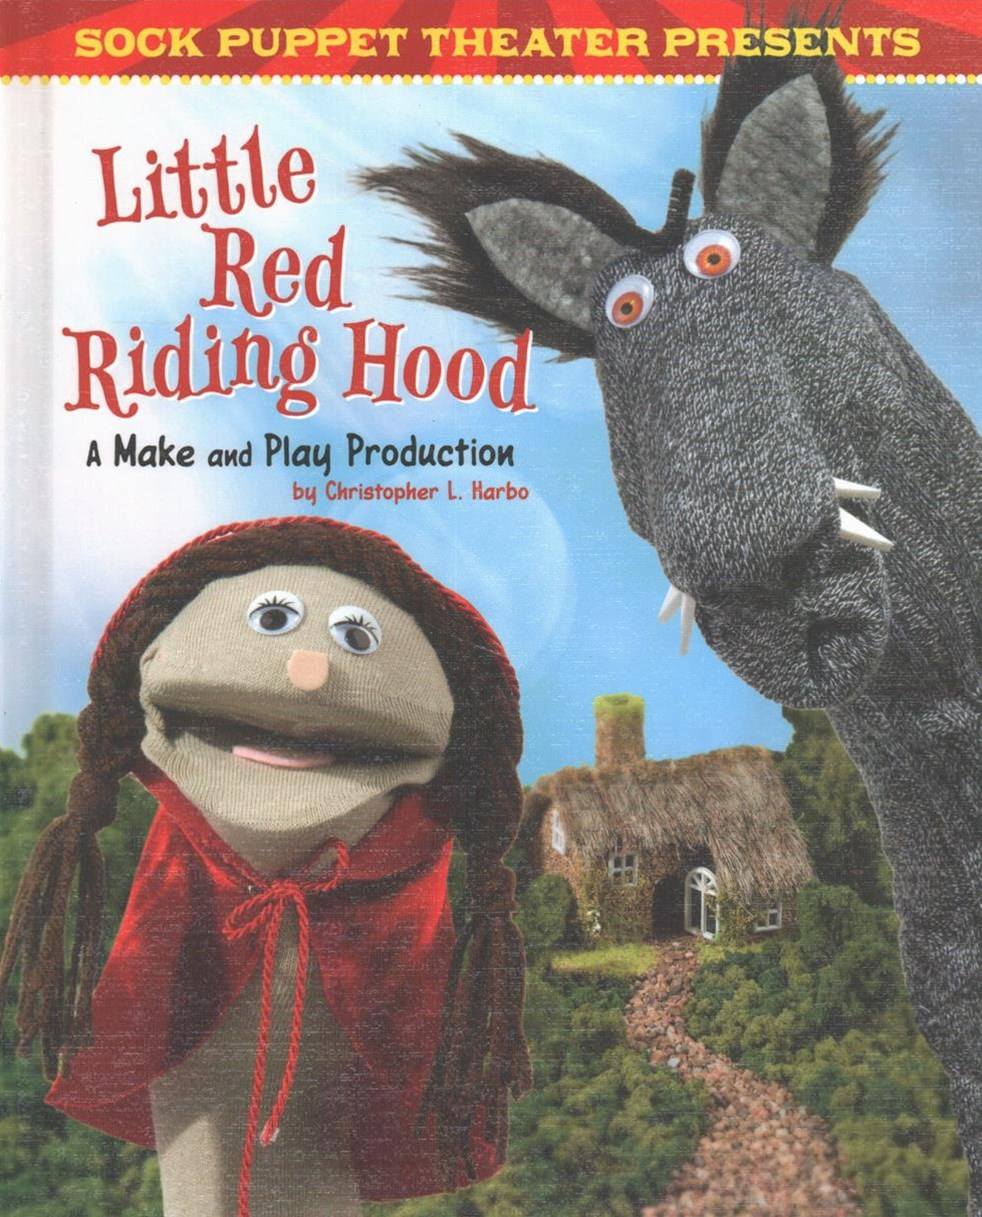 Sock Puppet Theater: Sock Puppet Theater Presents Little Red Riding Hood